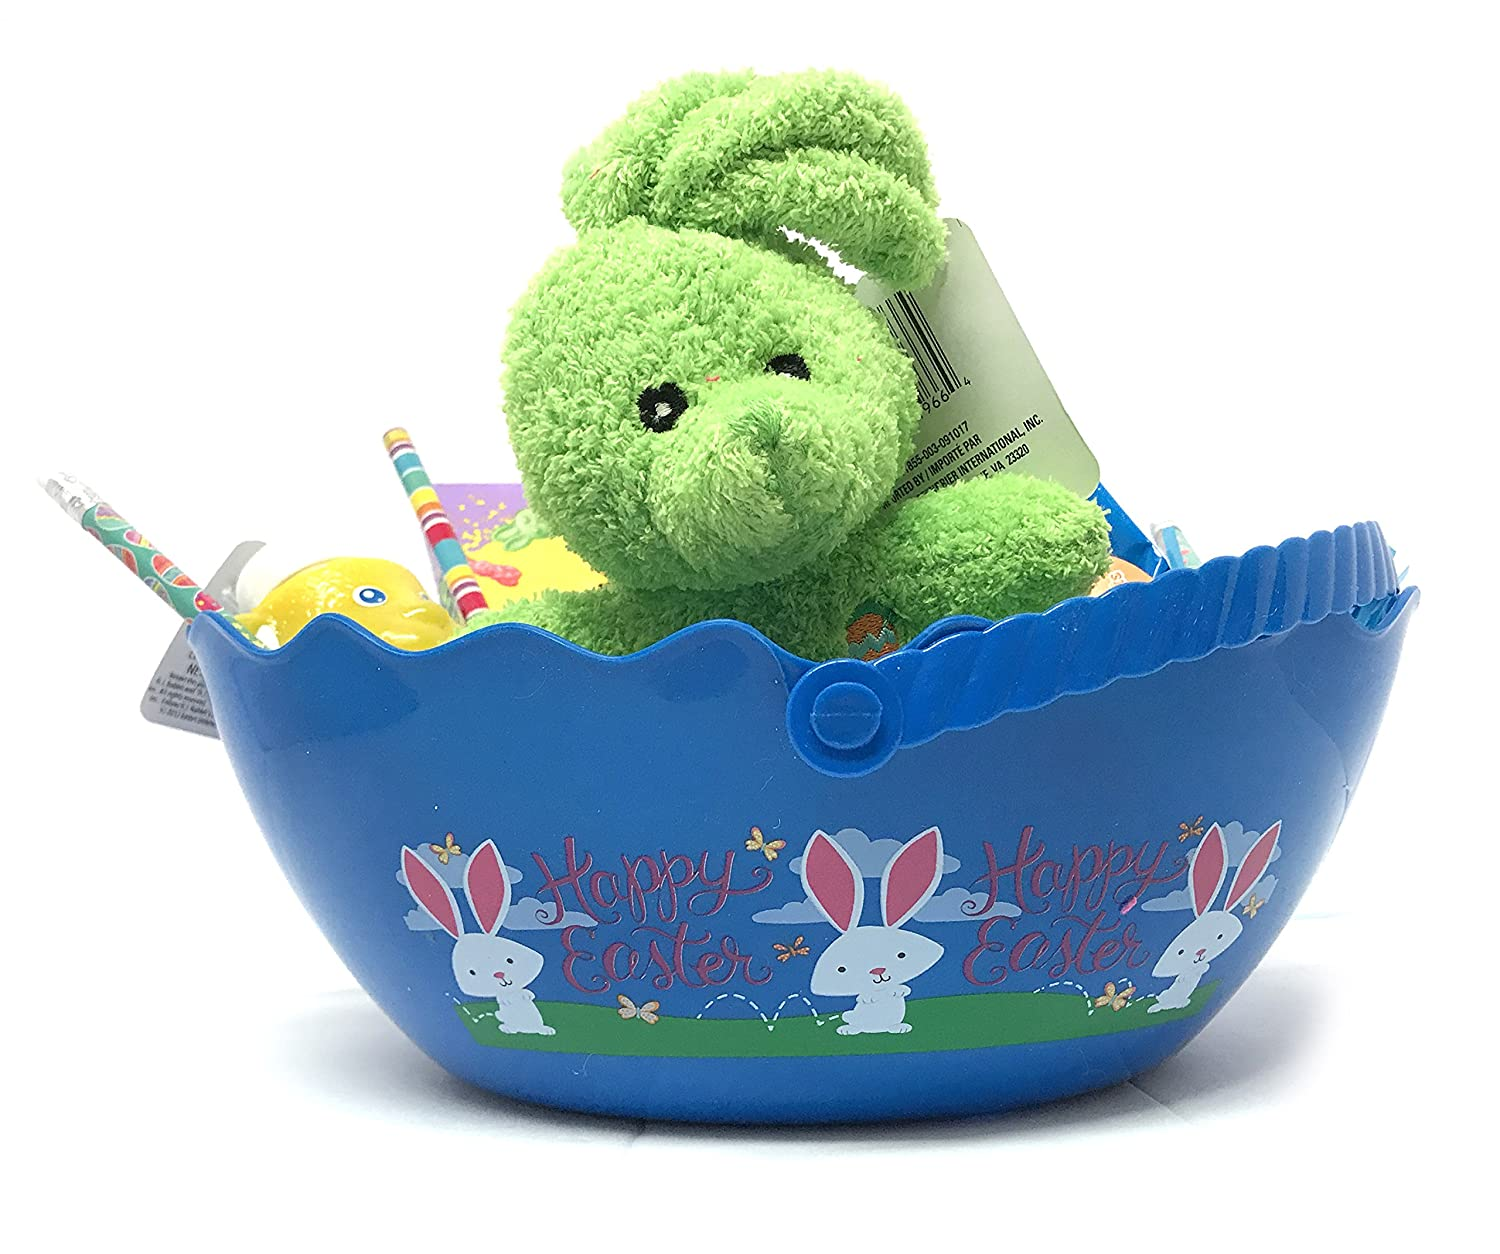 Spring Time Blue Easter Gift Basket - Filled with Green Bunny Plush, candy, toy, pencils, bubbles - Blue Pail: Amazon.com: Grocery & Gourmet Food